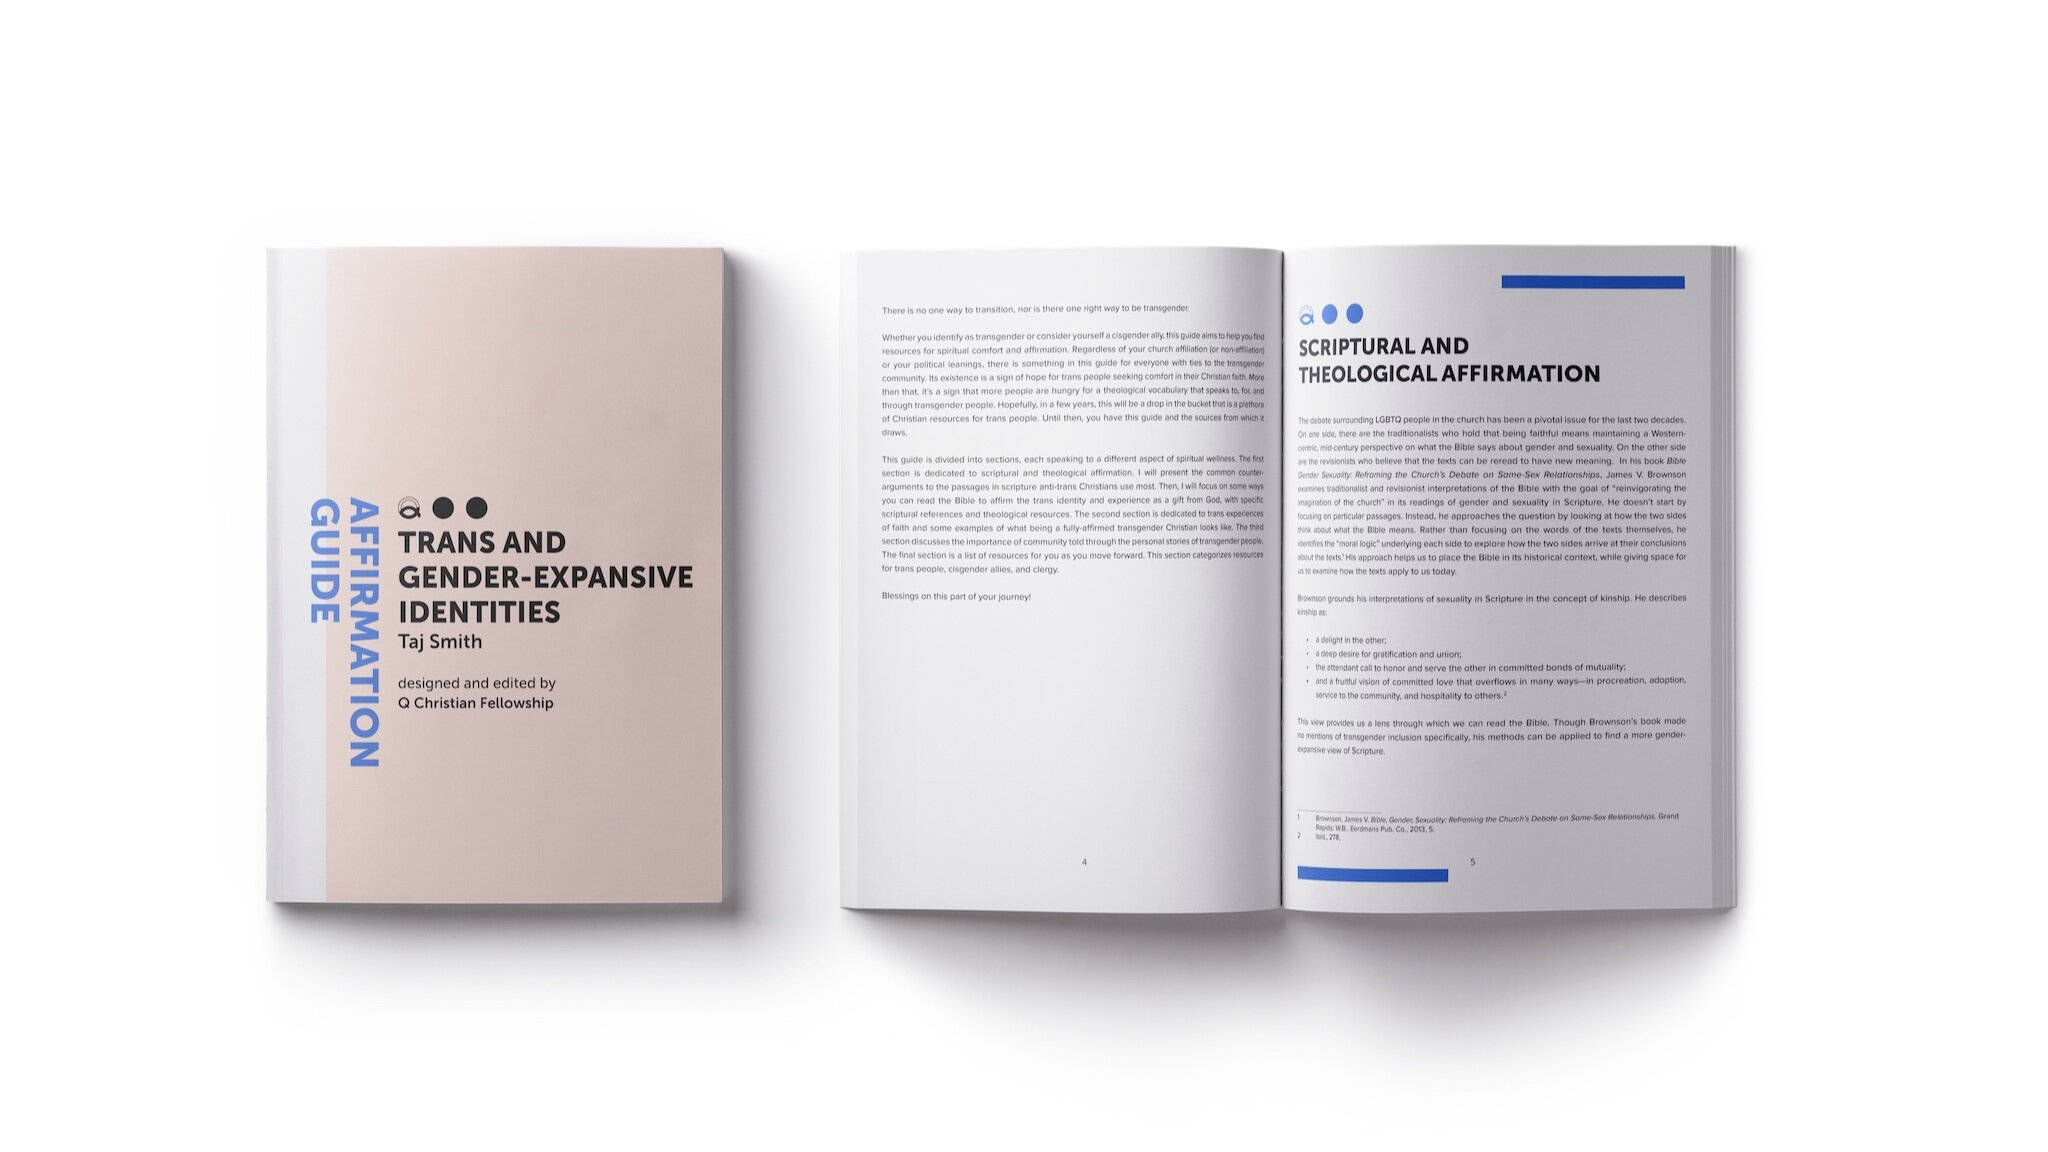 Trans+and+Gender-Expansive+Identities+%E2%80%93+Transparent+Mockup.jpg